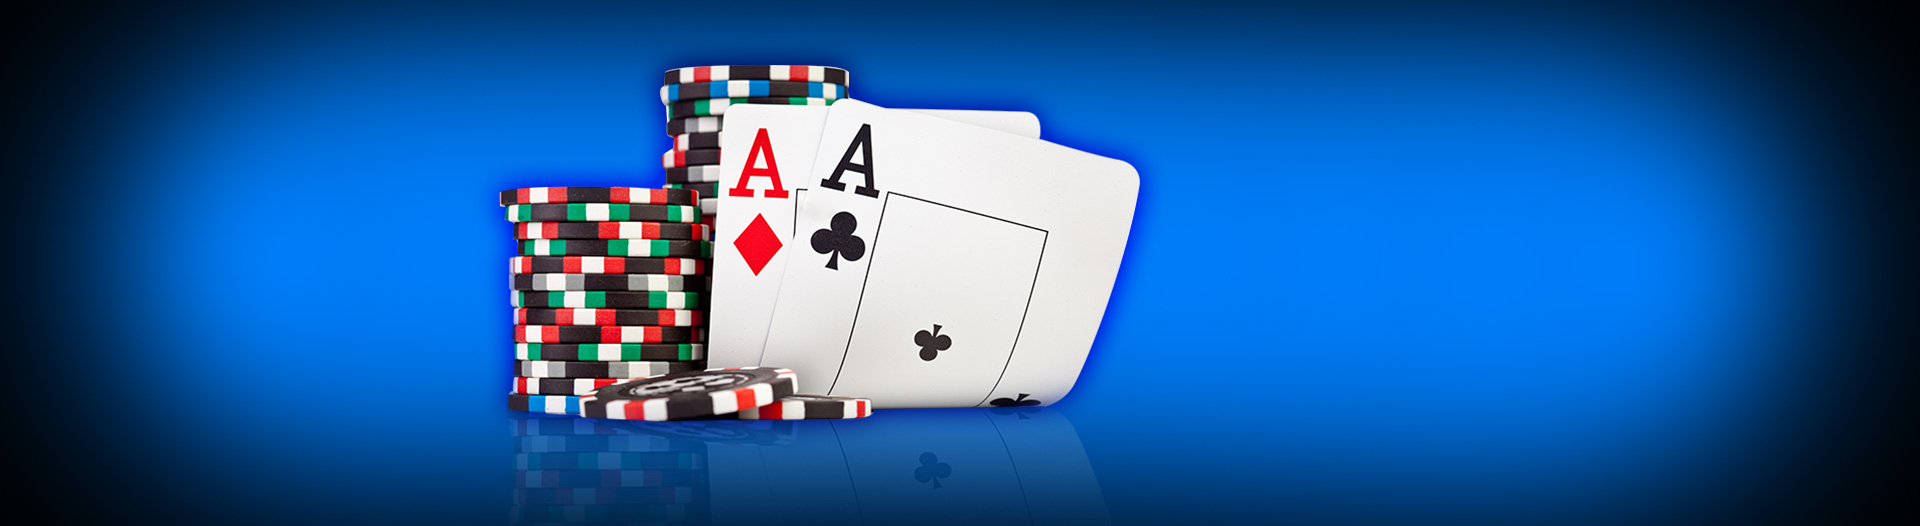 download poker free